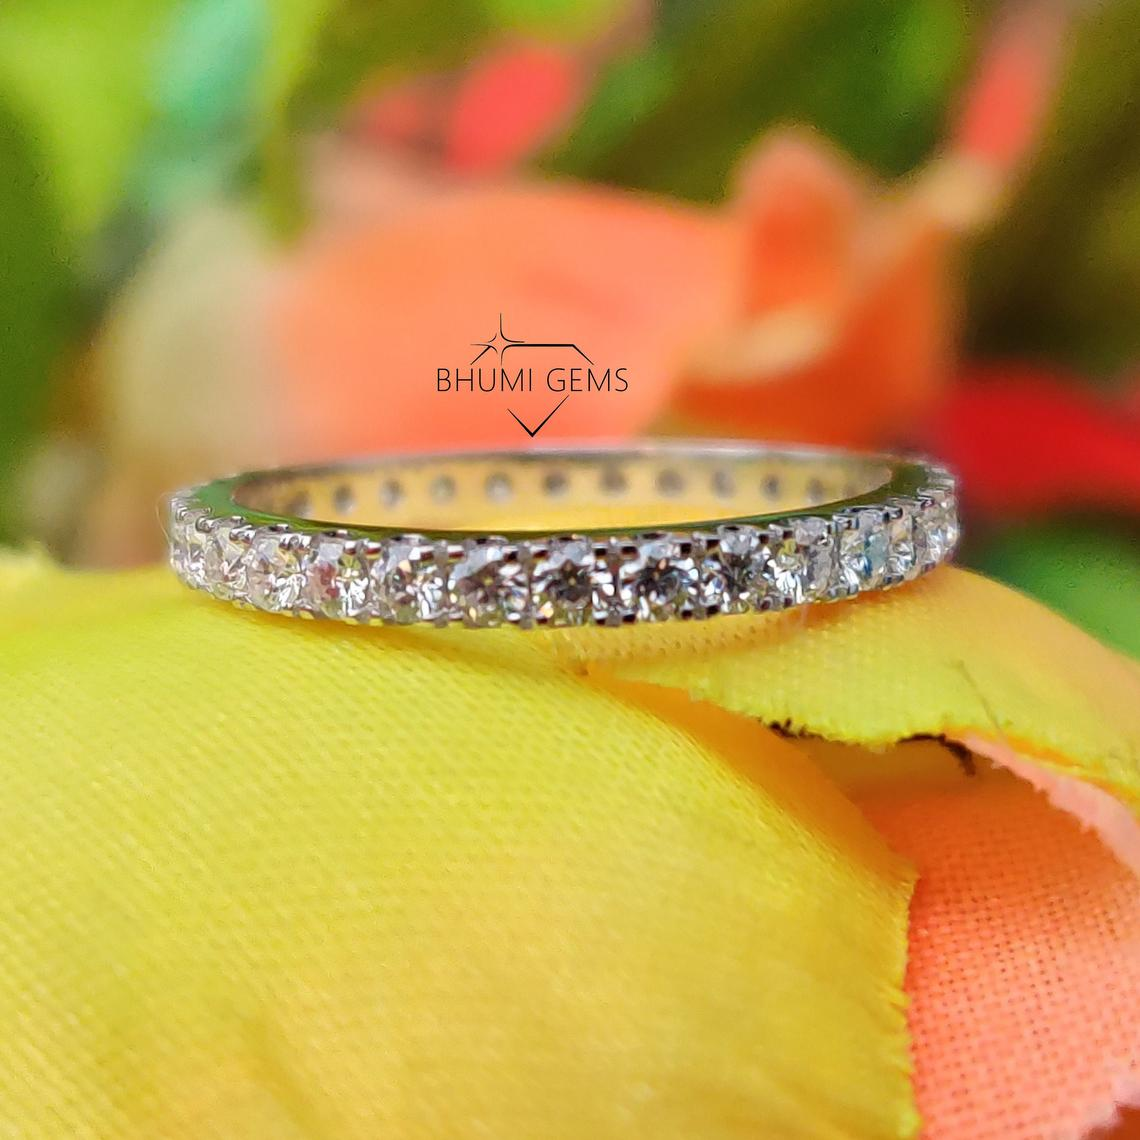 1.8MM Round Cut VVS1 Moissanite Wedding Band   Eternity Band   Engagement Band Rings   Conflict Free Jewelry   Antique   Classic Silver Gold